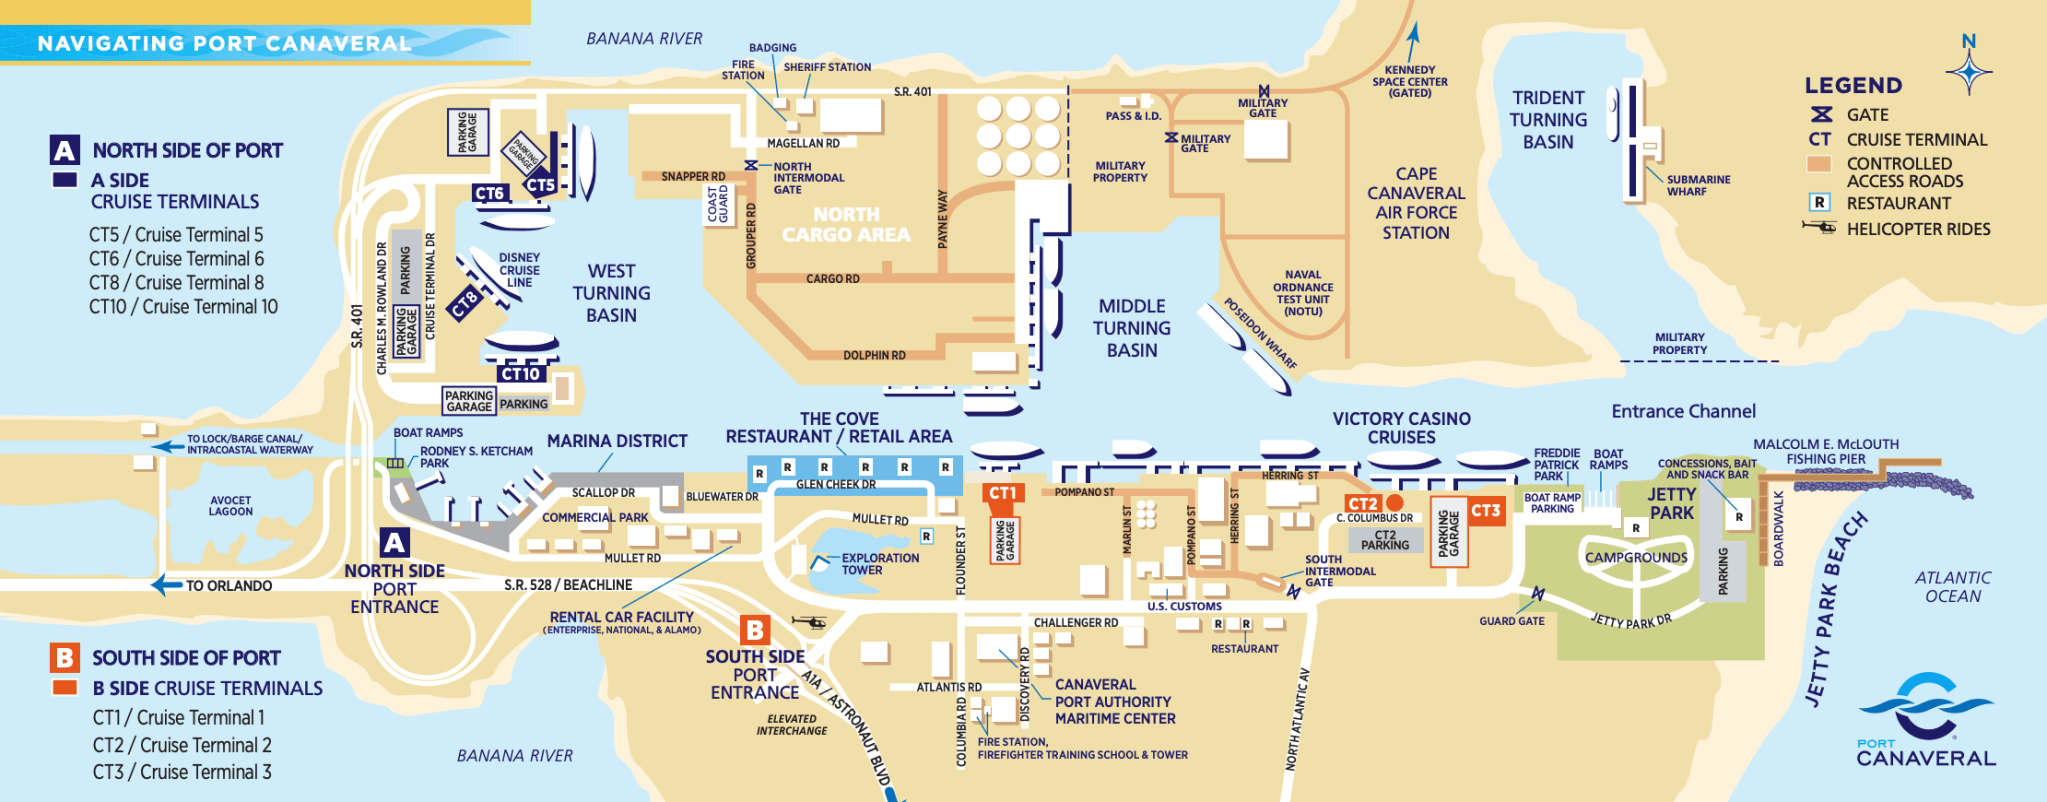 Map courtesy of Port Canaveral